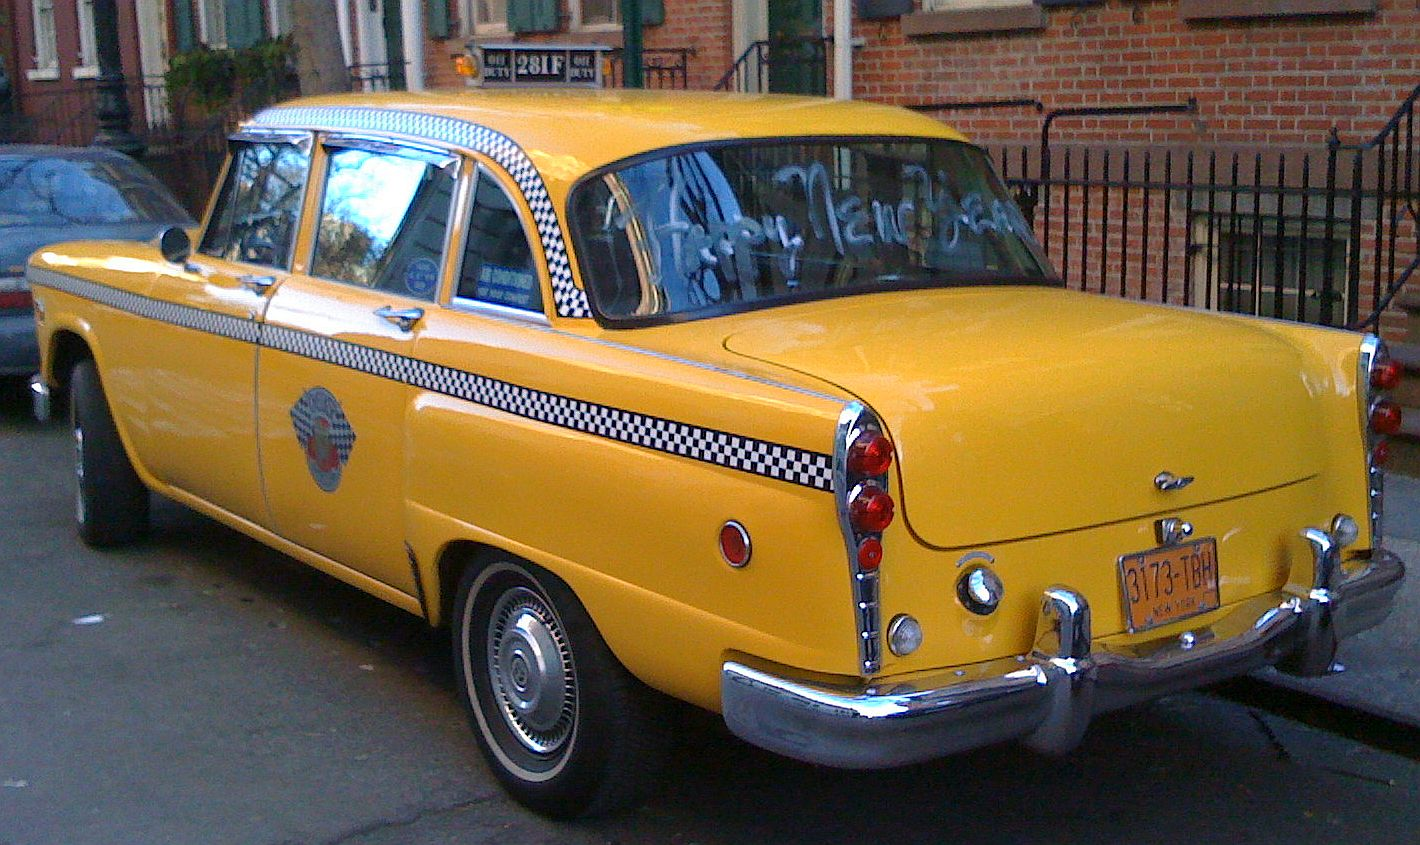 Checker taxi cab picture 6 reviews news specs buy car - Order a cab ...